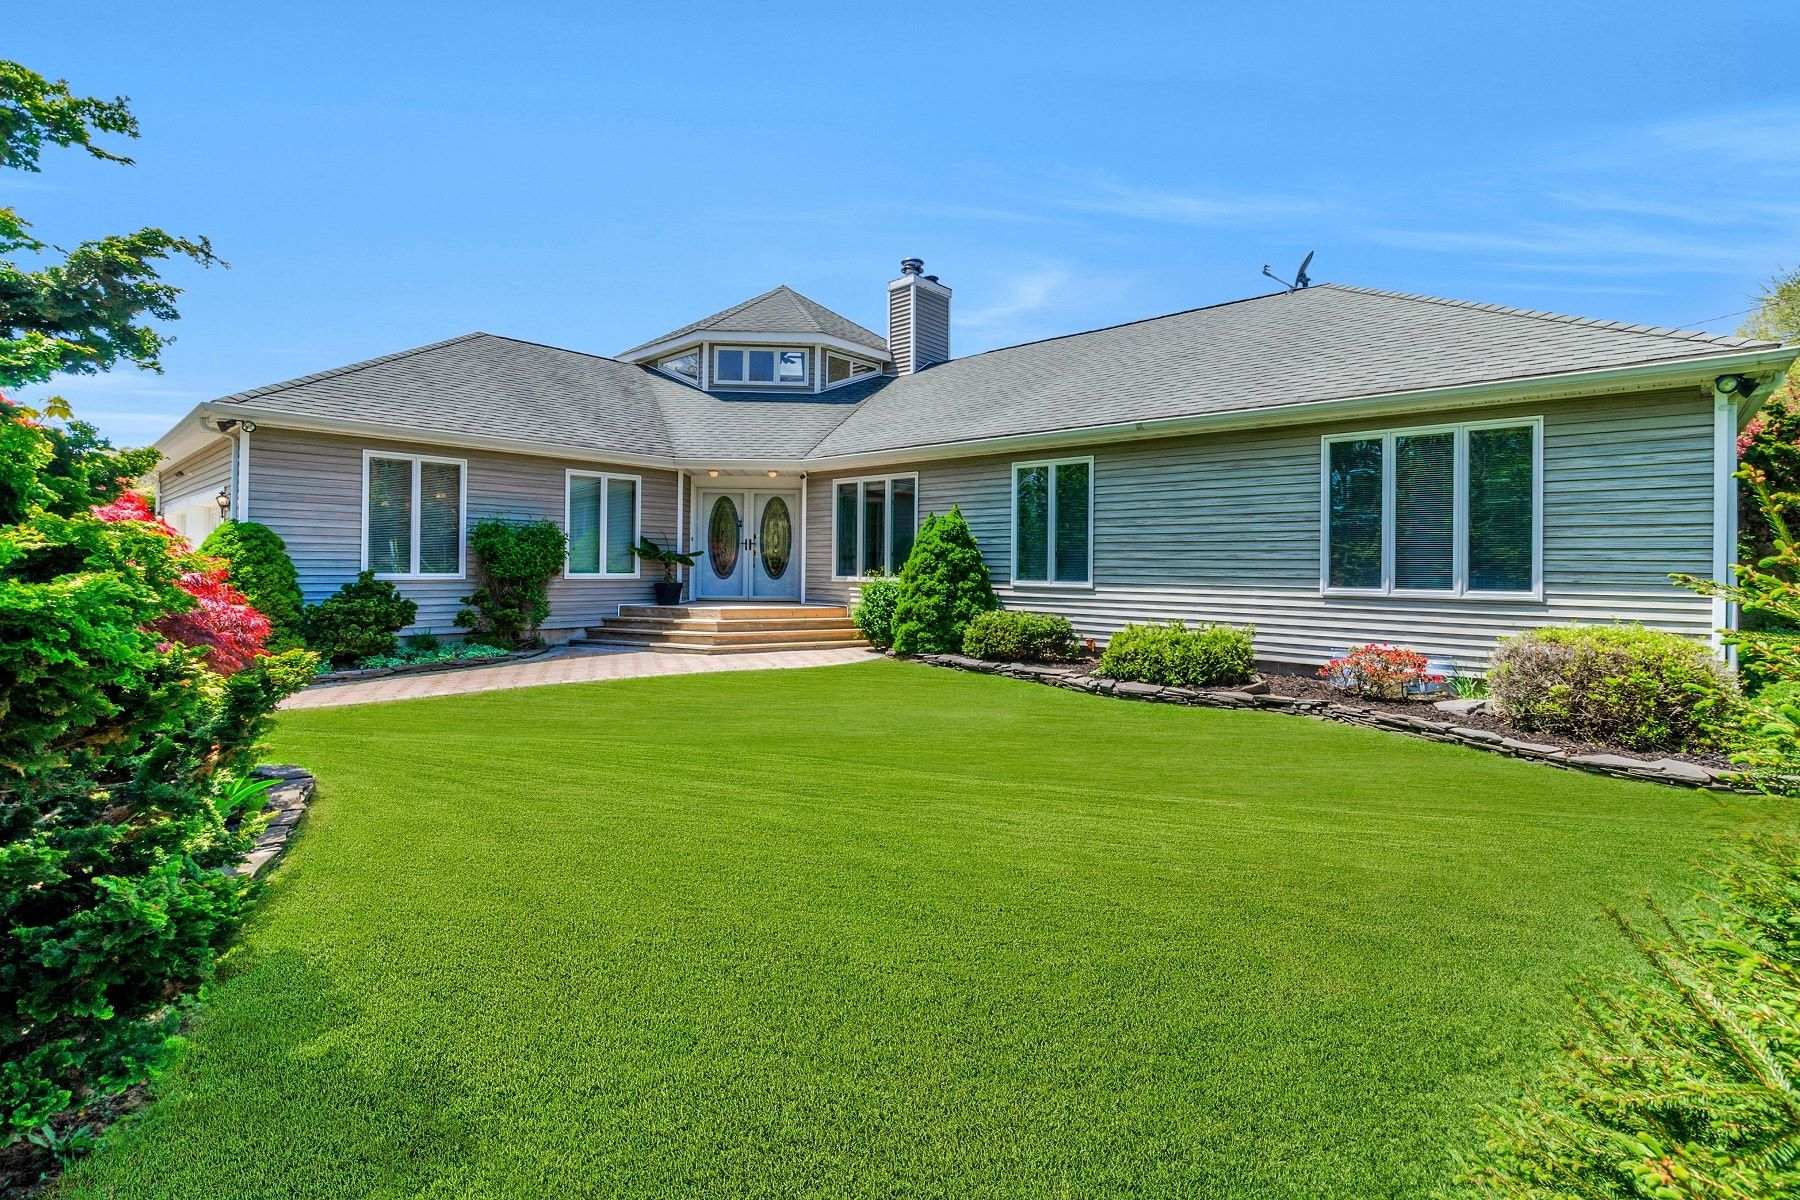 Single Family Home for Active at Southold 1530 Clearview Ave Southold, New York 11971 United States